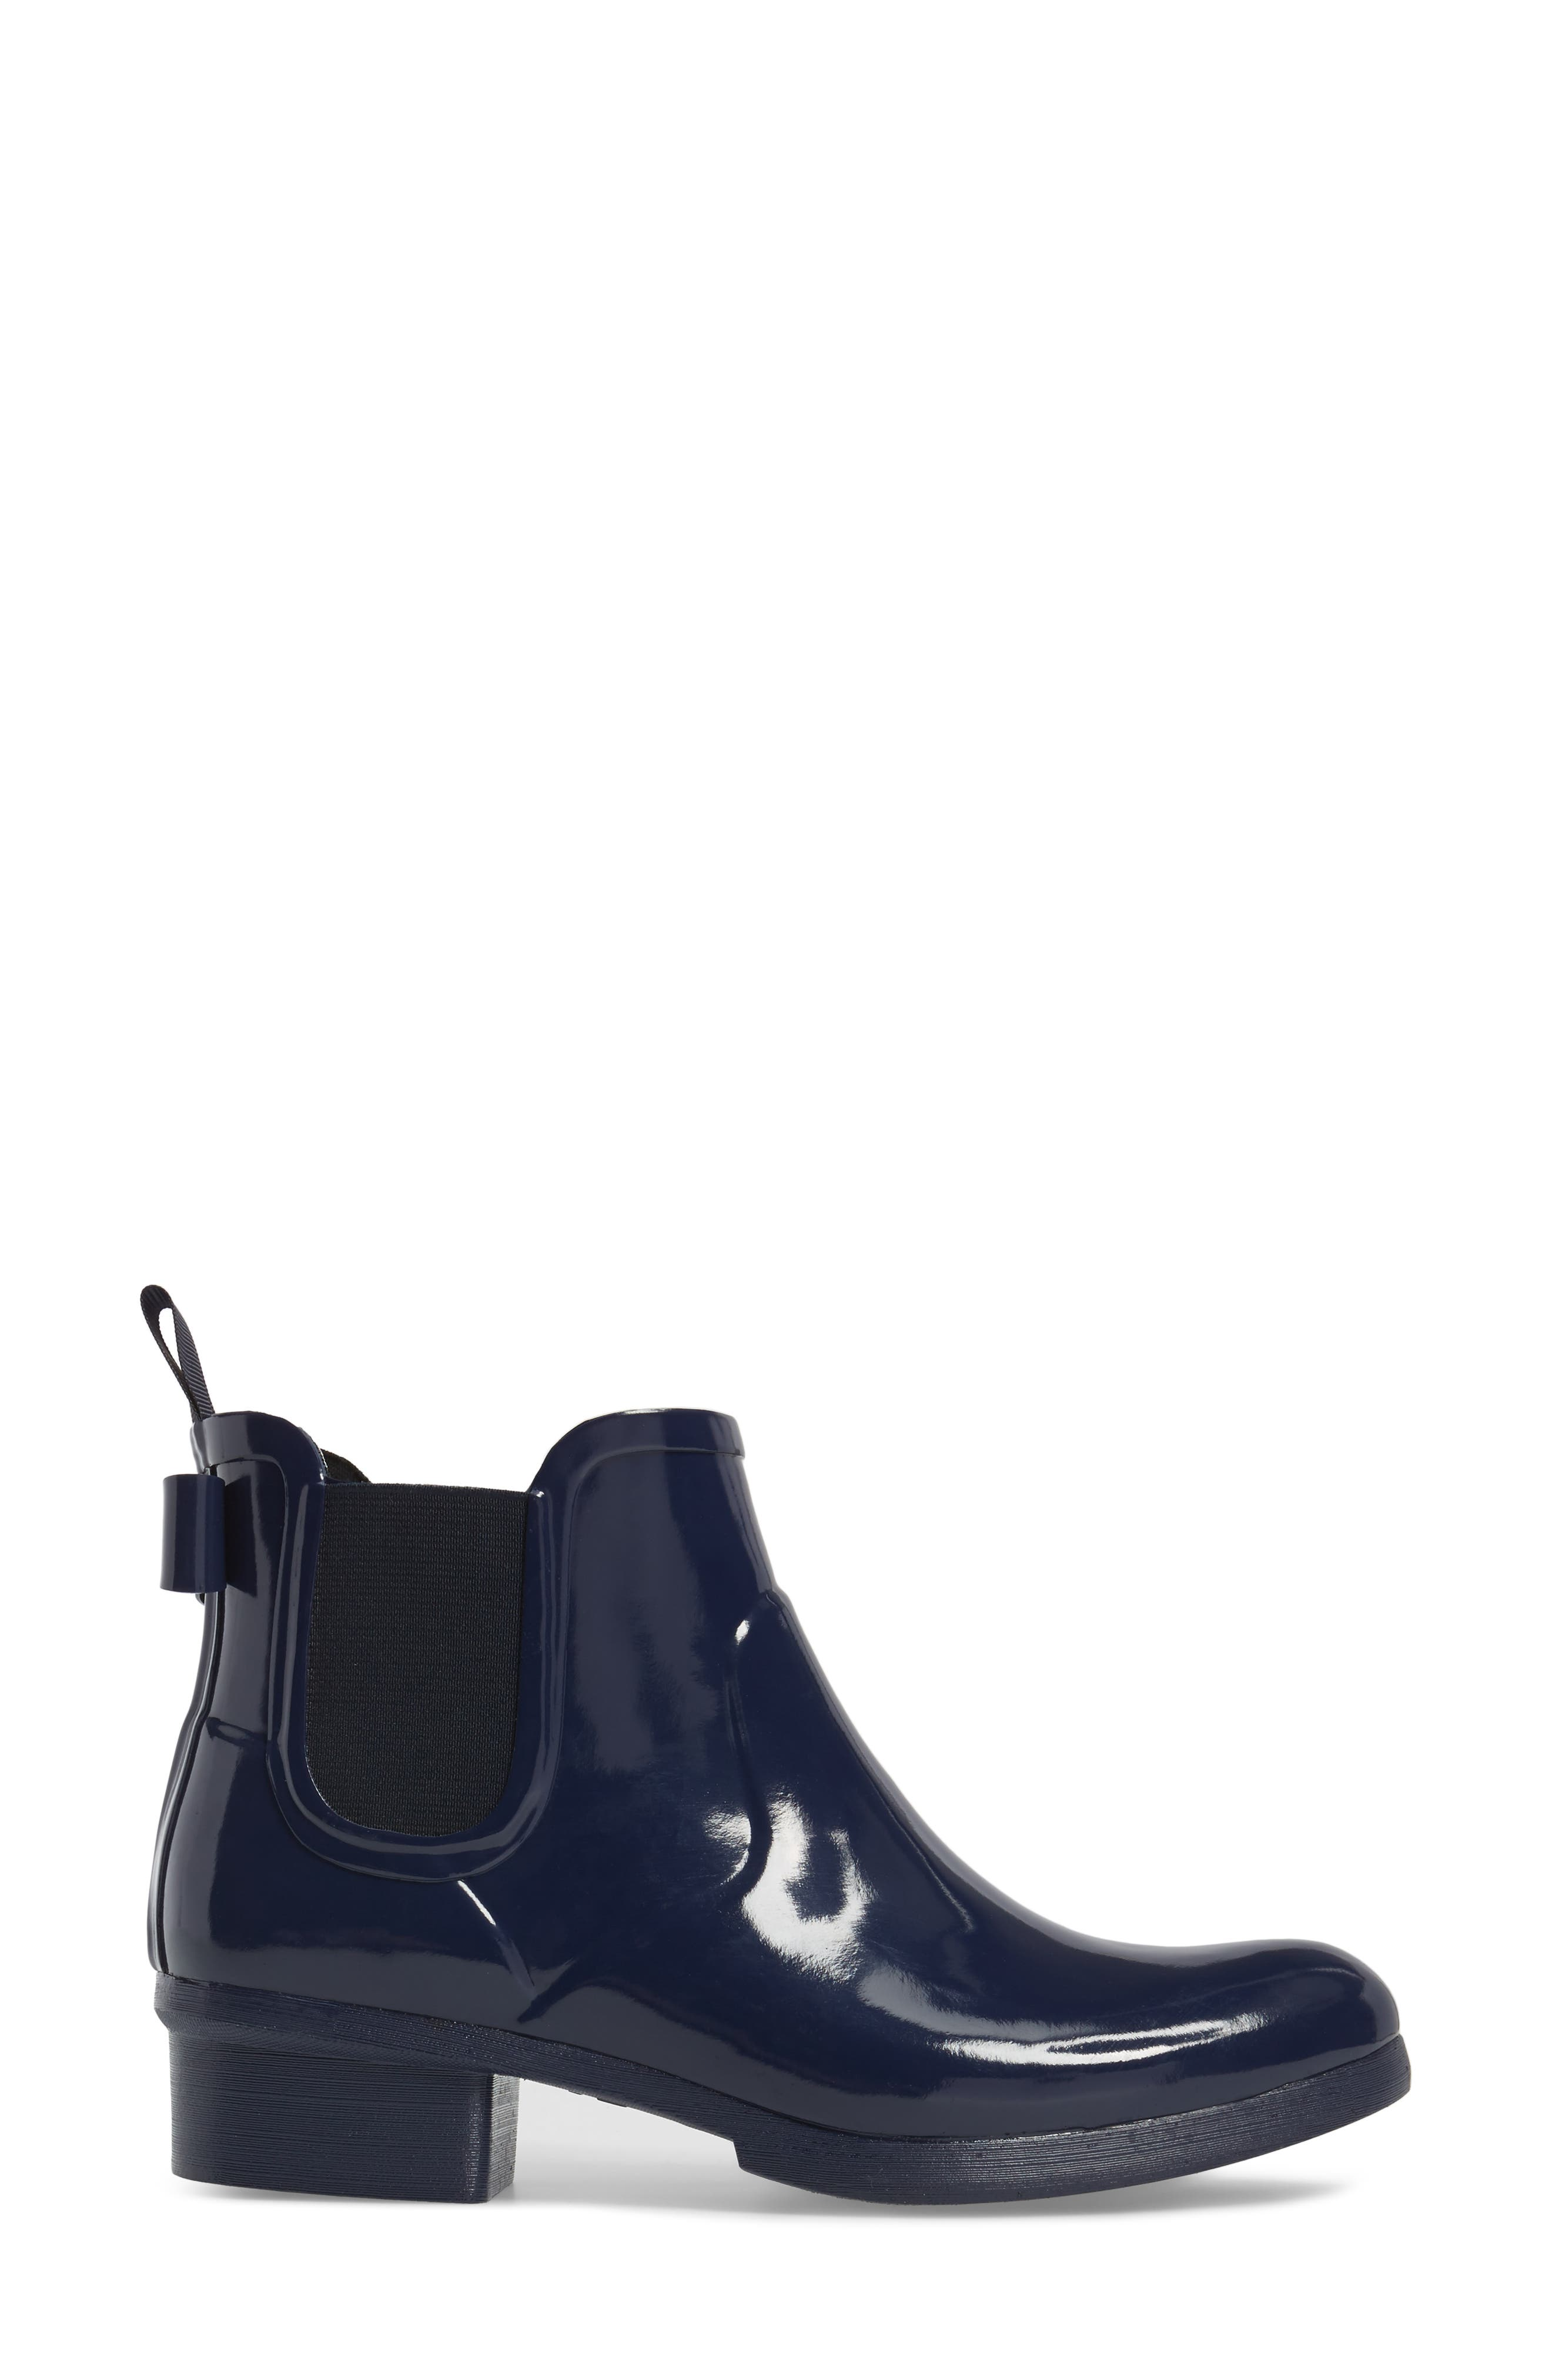 telly chelsea rain bootie,                             Alternate thumbnail 3, color,                             New Navy Shiny Rubber